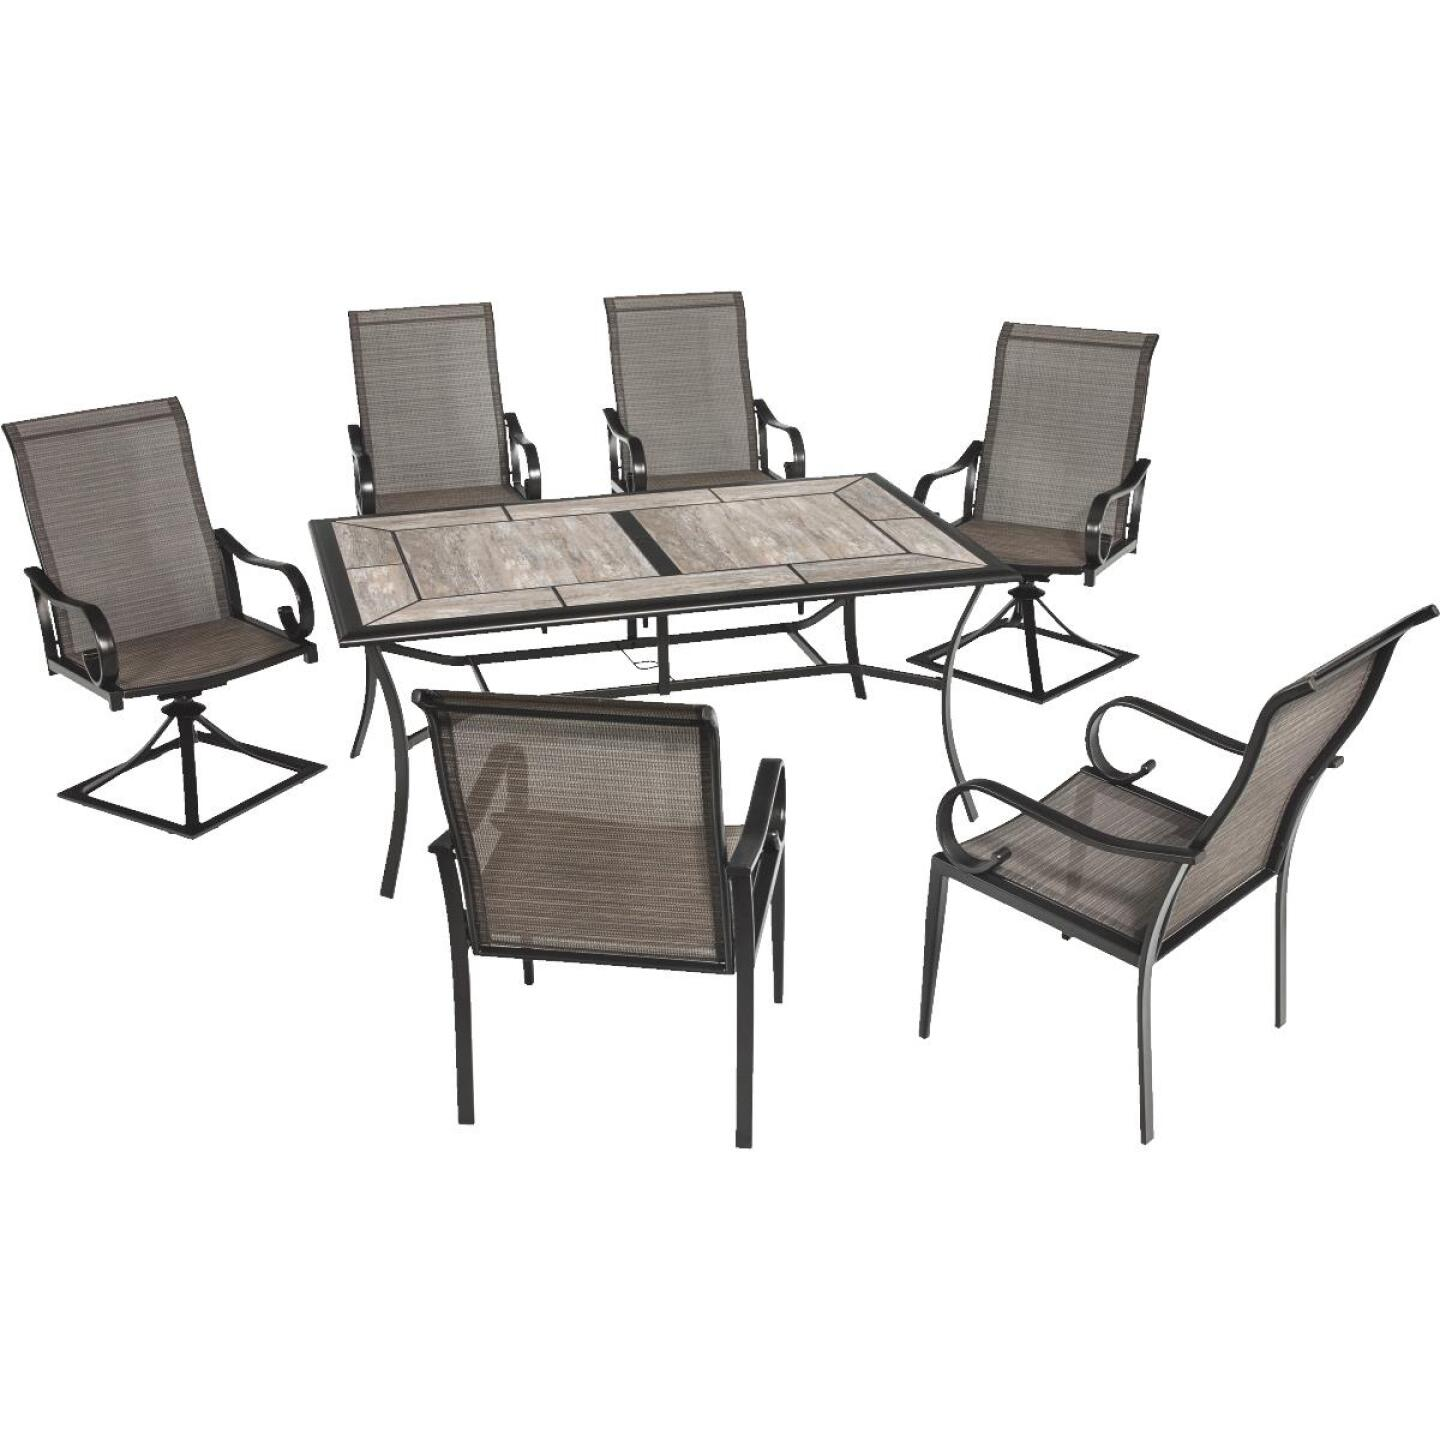 Outdoor Expressions Berkshire 7-Piece Dining Set Image 231